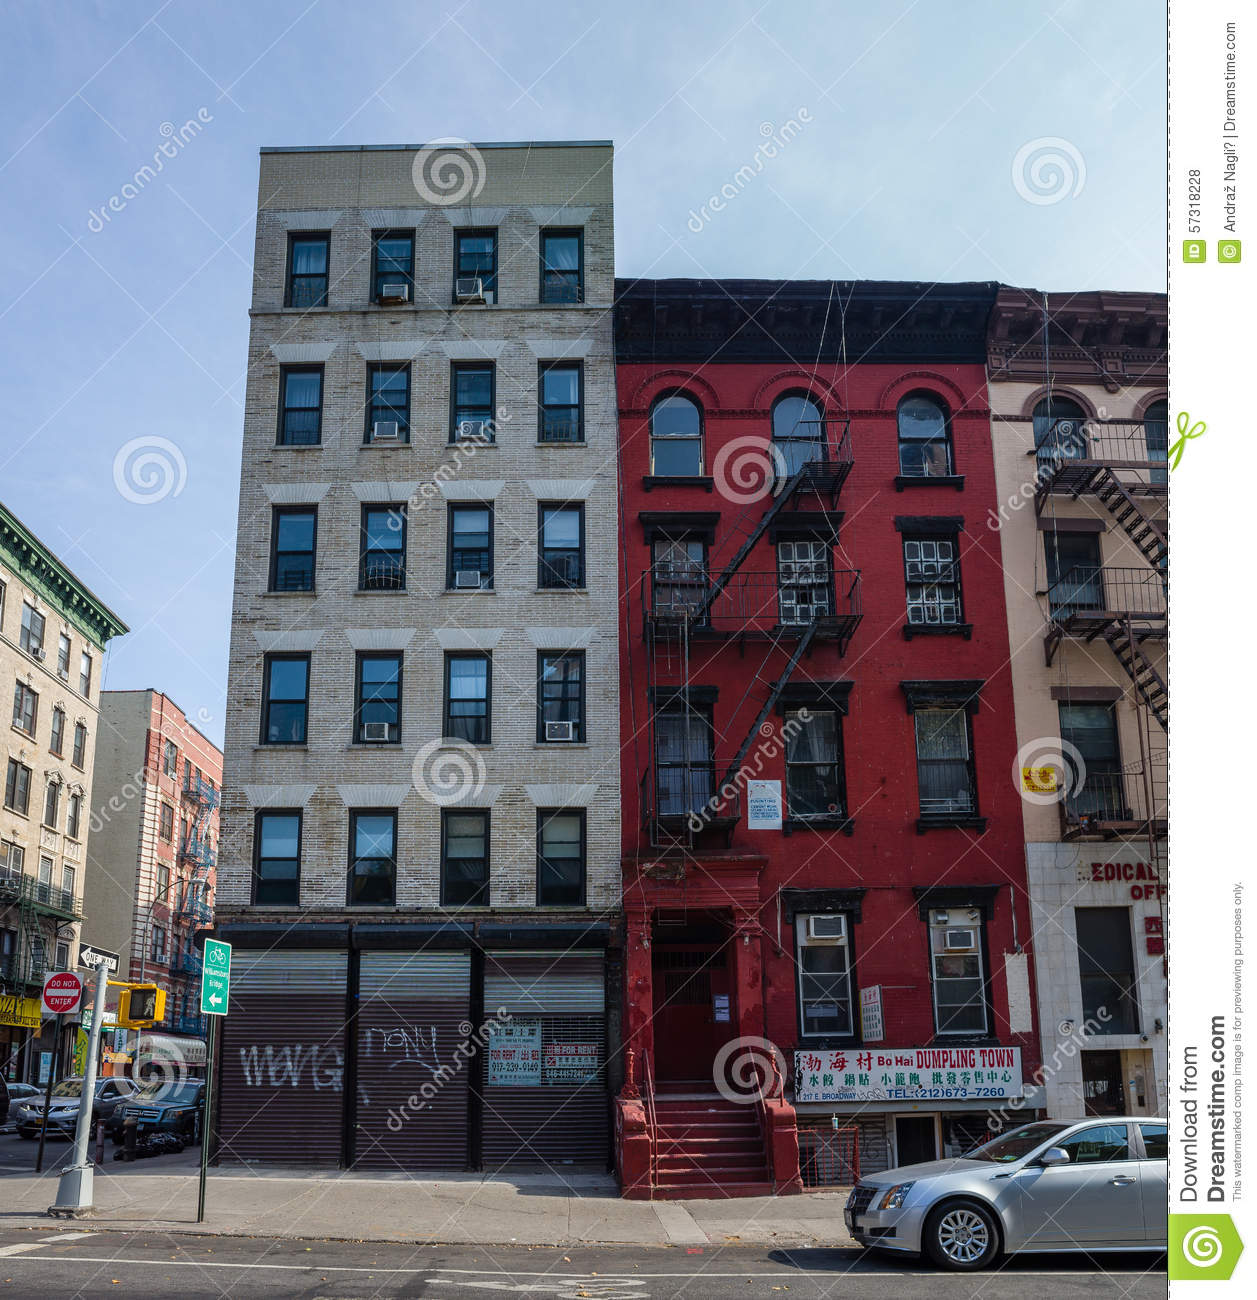 New York City Flats: Red Apartment Building In Chinatown Where Main Character